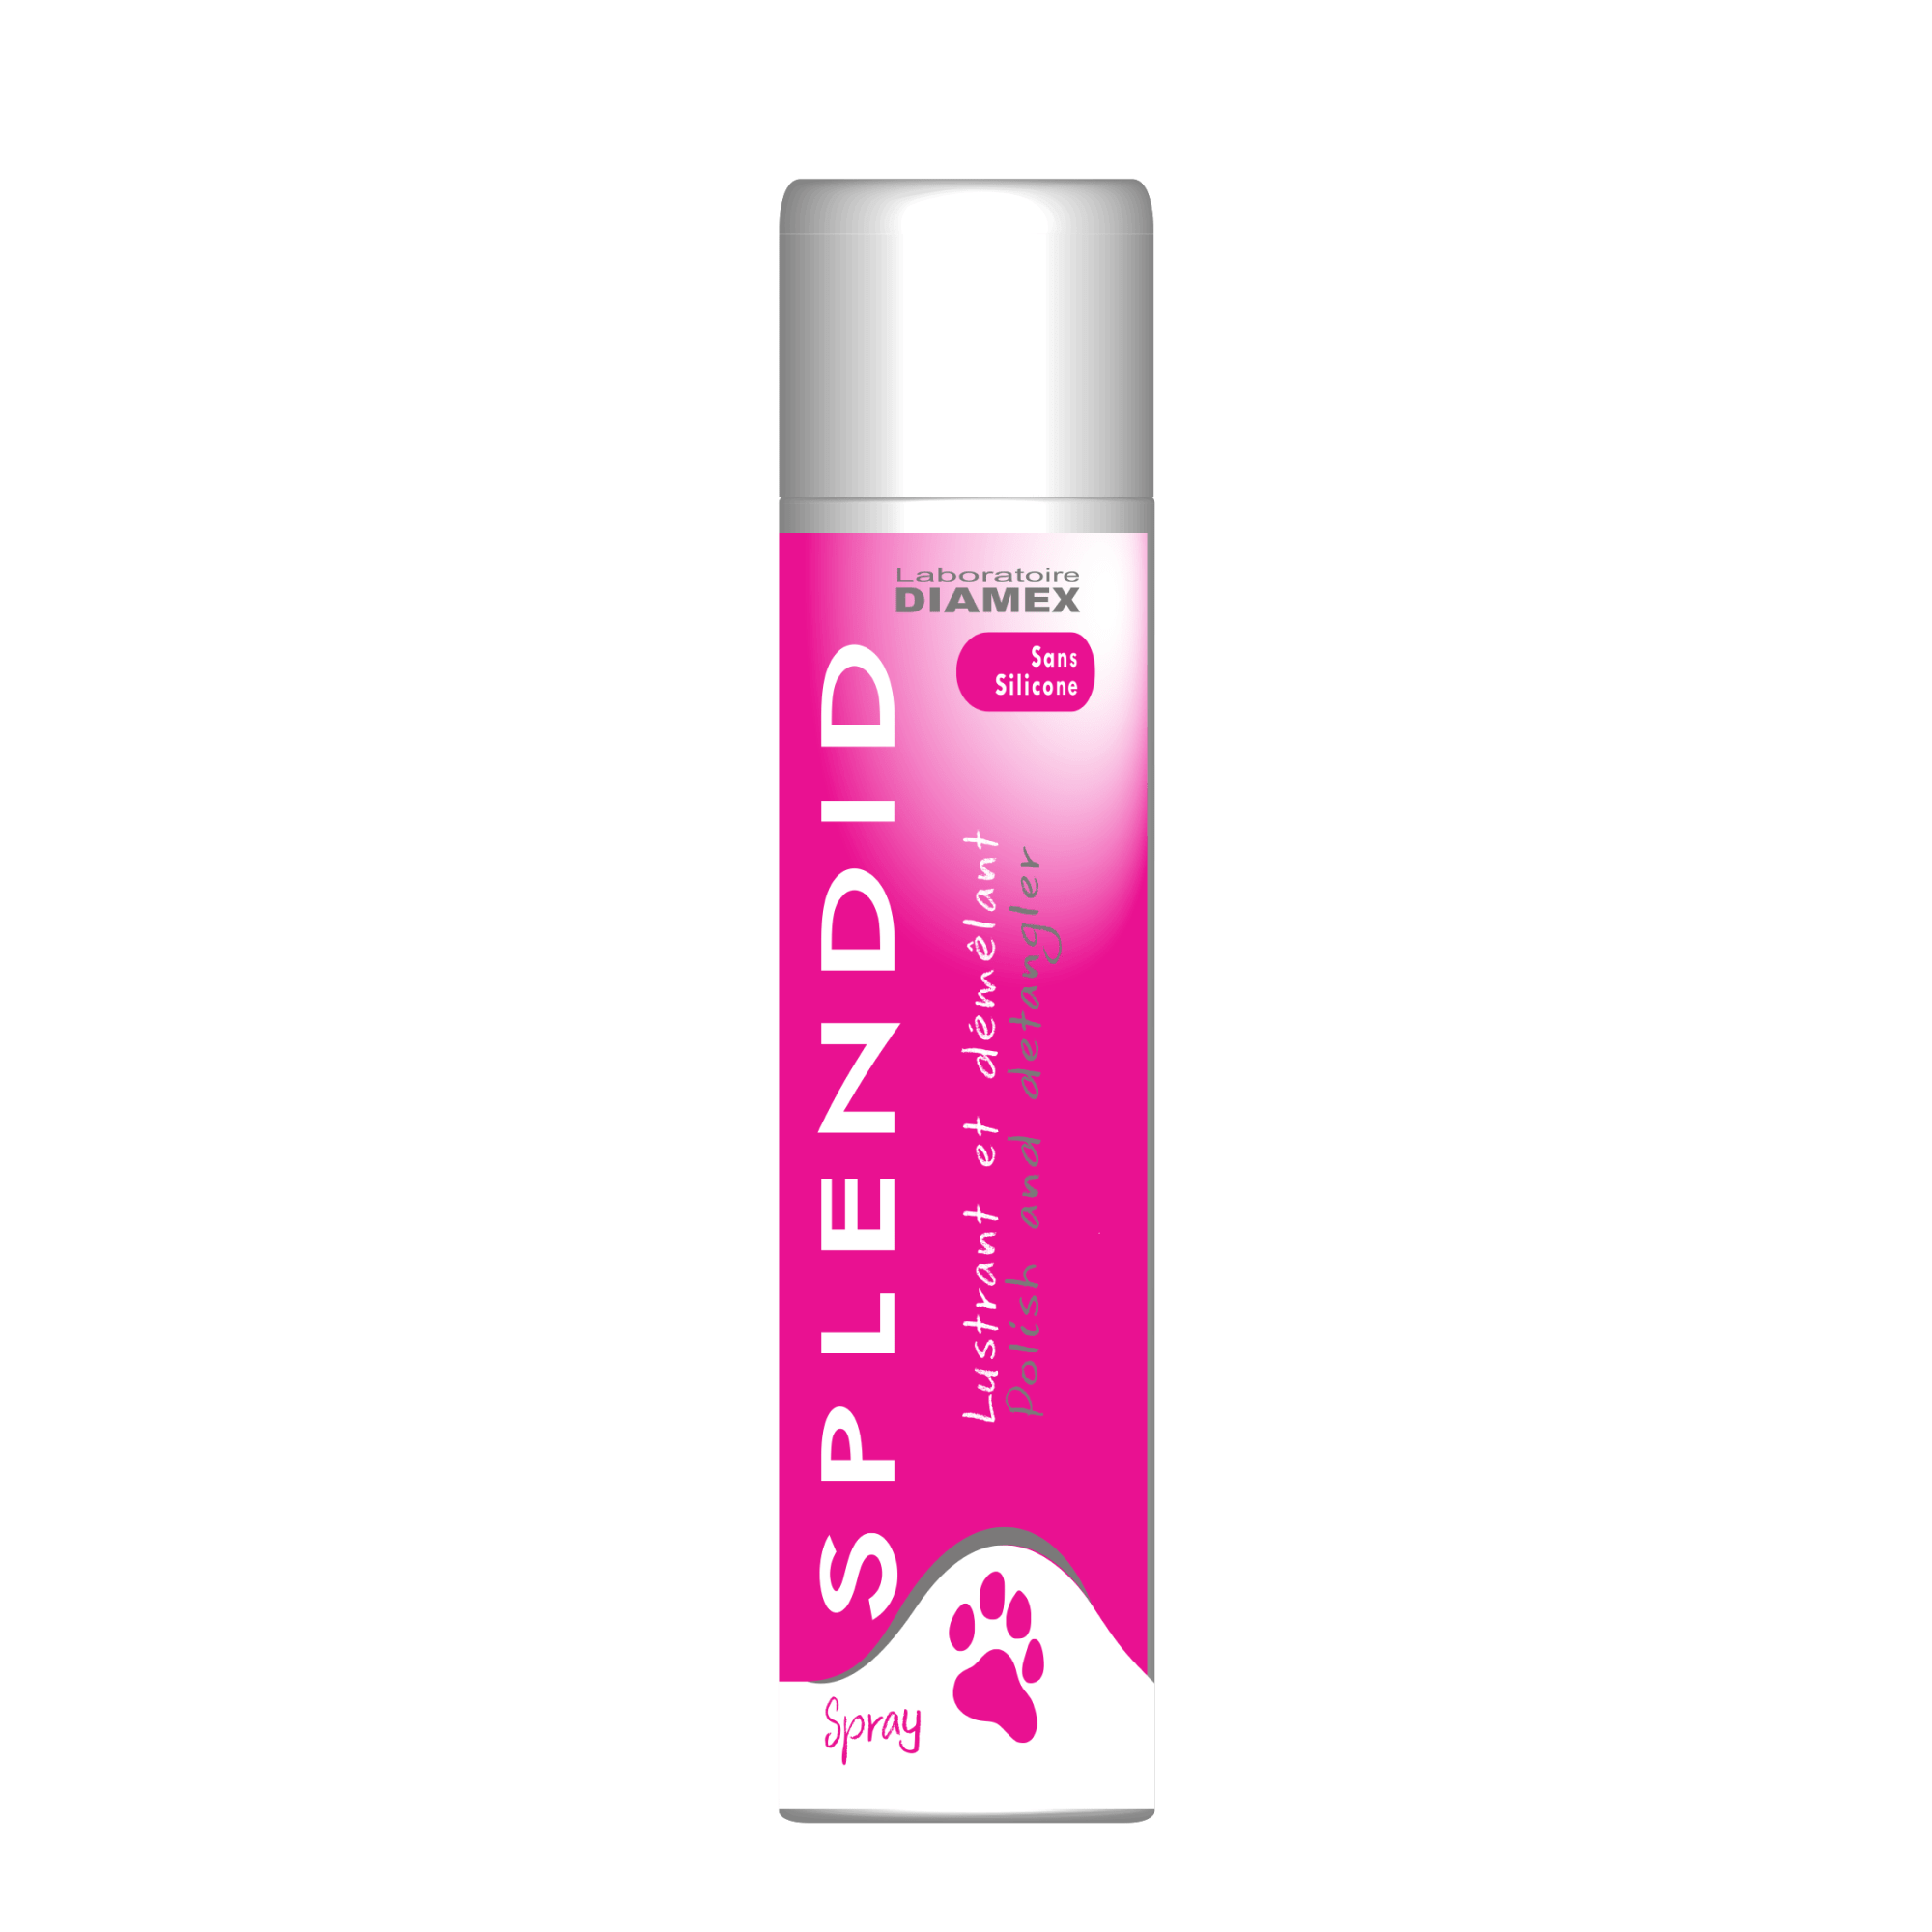 Soin du poil Diamex Spray Splendid